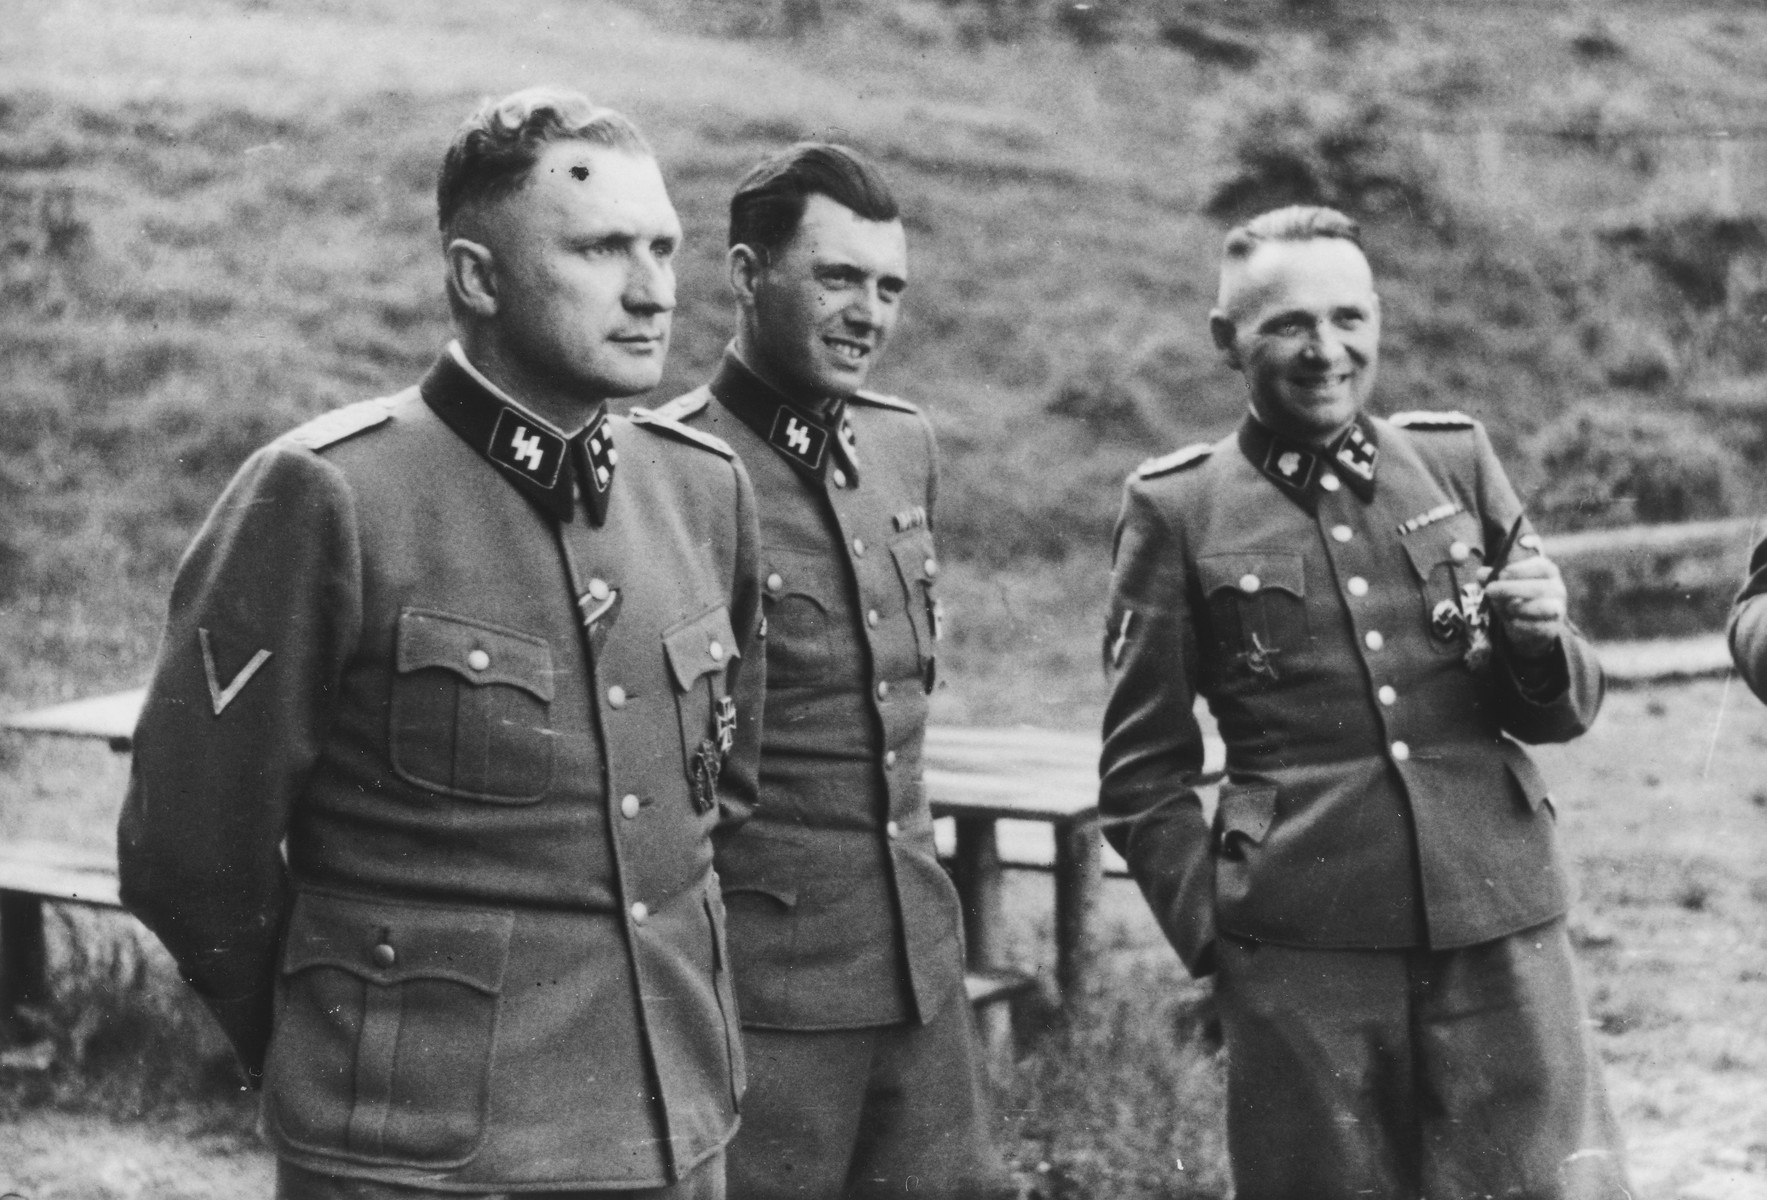 Three SS officers socialize on the grounds of the SS retreat of Solahuette outside of Auschwitz.  From left to right they are: Richard Baer (Commandant of Auschwitz), Dr. Josef Mengele and Rudolf Hoess (the former Auschwitz Commandant).   [Based on the officers visiting Solahutte, we surmise that the photographs were taken to honor Rudolf Hoess who completed his tenure as garrison senior on July 29.]